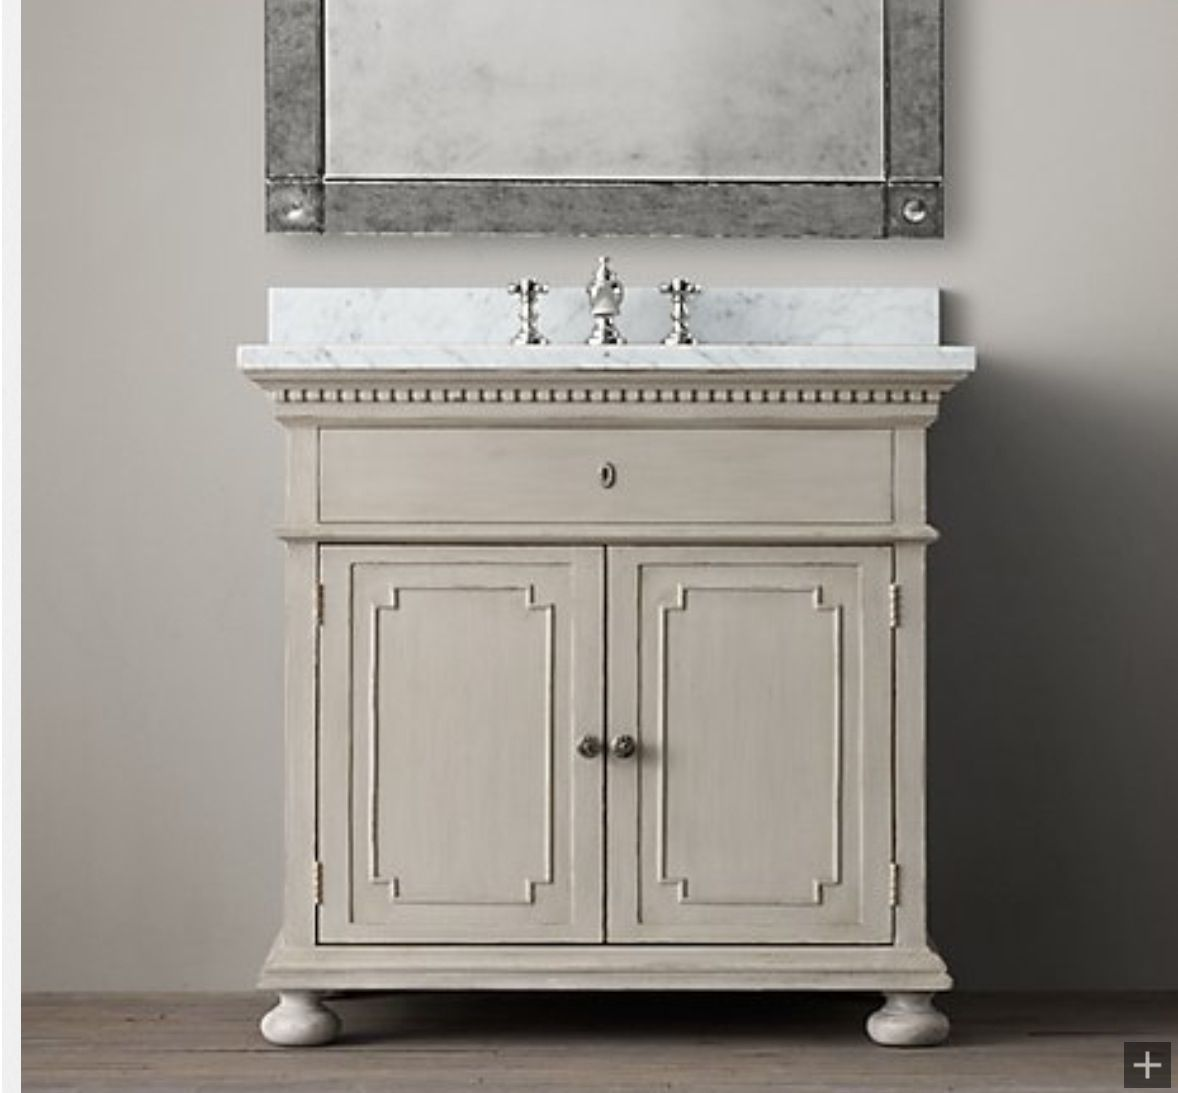 Awesome If You Have The Space For External Storage, You May Have Looked Into Hutches Like The Restoration Hardware Kent Bath Cabinet Cynthia From Clockwork Interiors Was Peeking Around At Bathroom Cabinets But Wasnt Loving The Steep